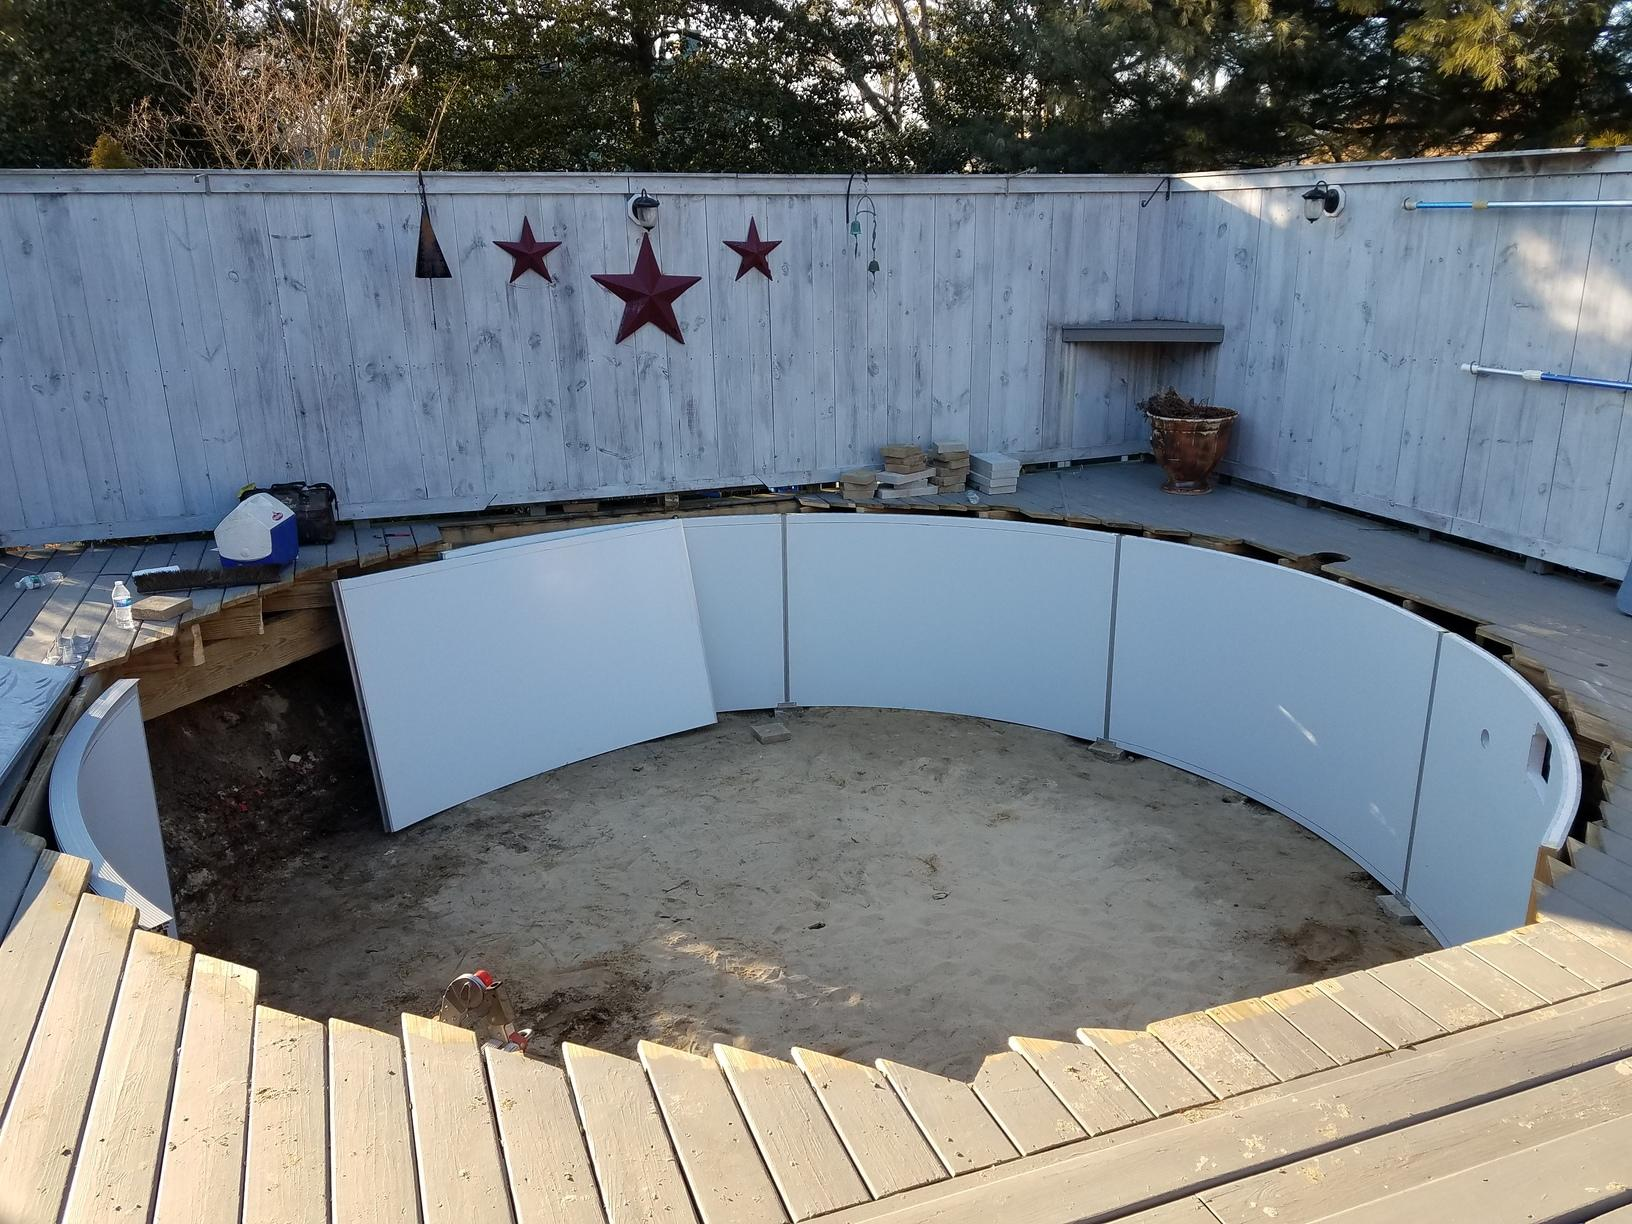 Fitting Pool with Deck